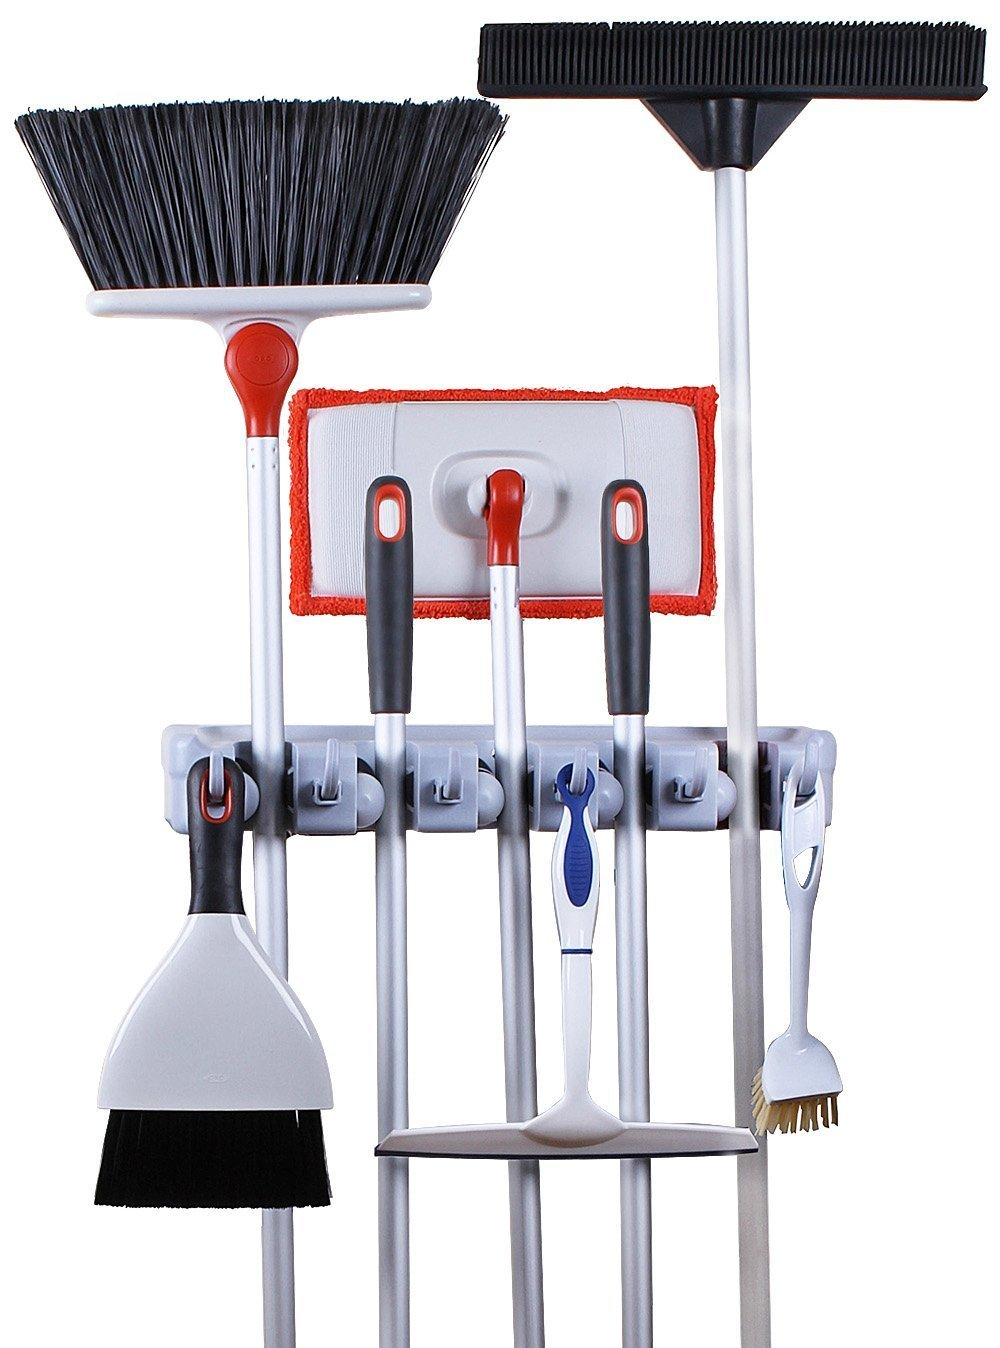 Order now greenco mop and broom organiser wall and closet mount organizer rack holds brooms mops rakes garden equipment tools and more contains 5 non slip automatically adjustable holders and 6 hooks